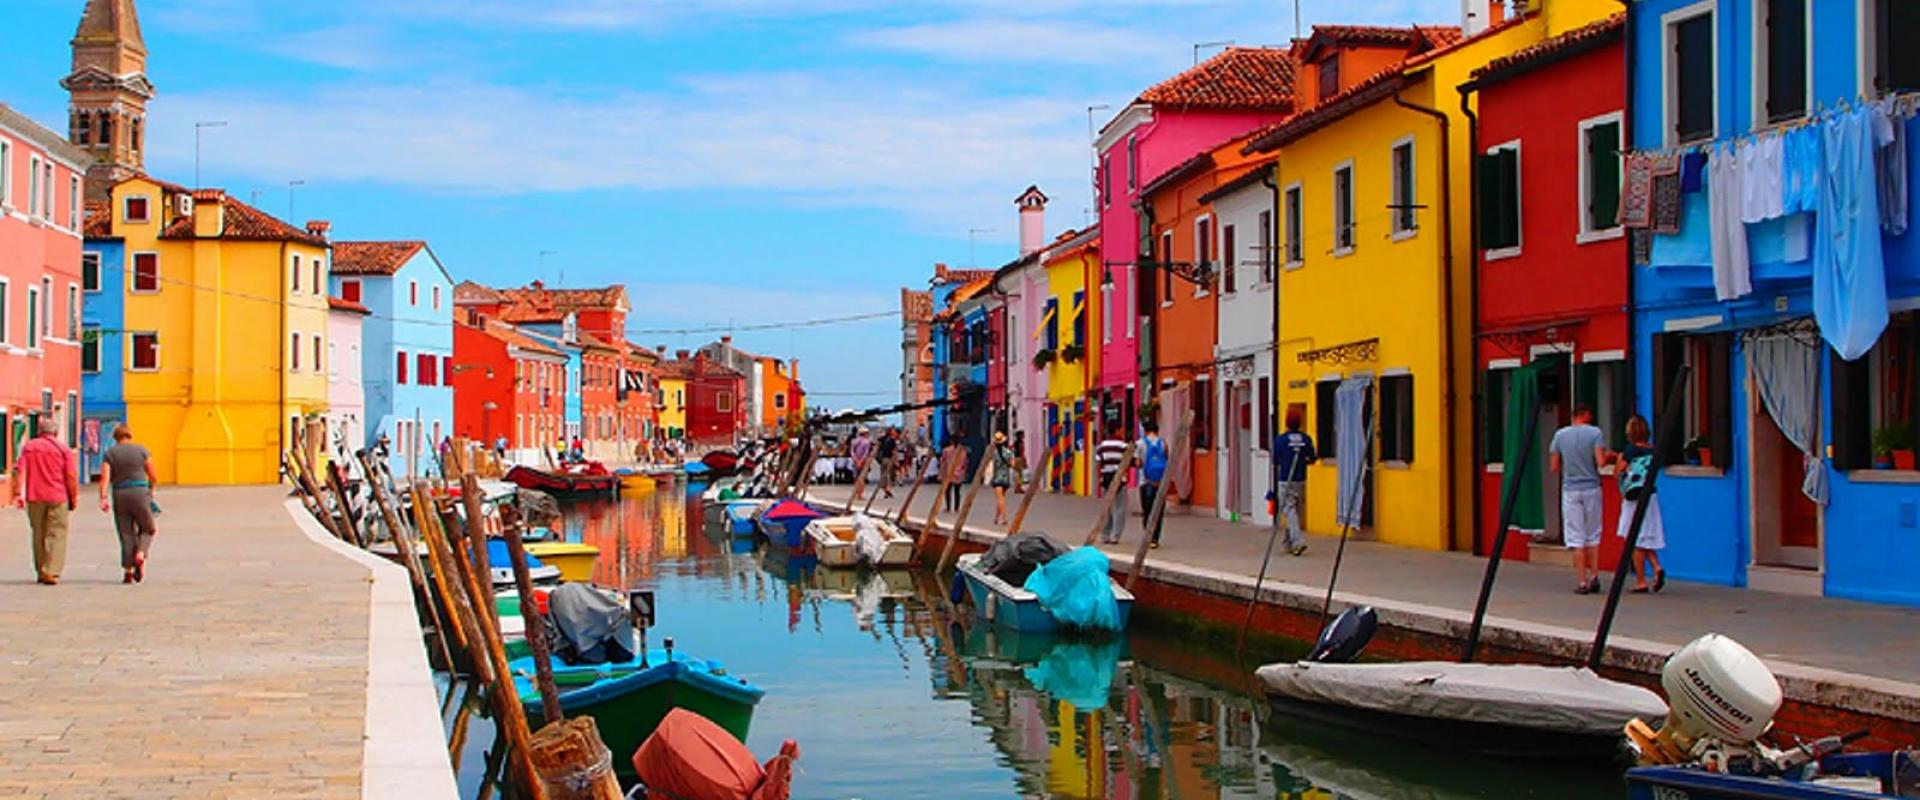 how to get to murano island